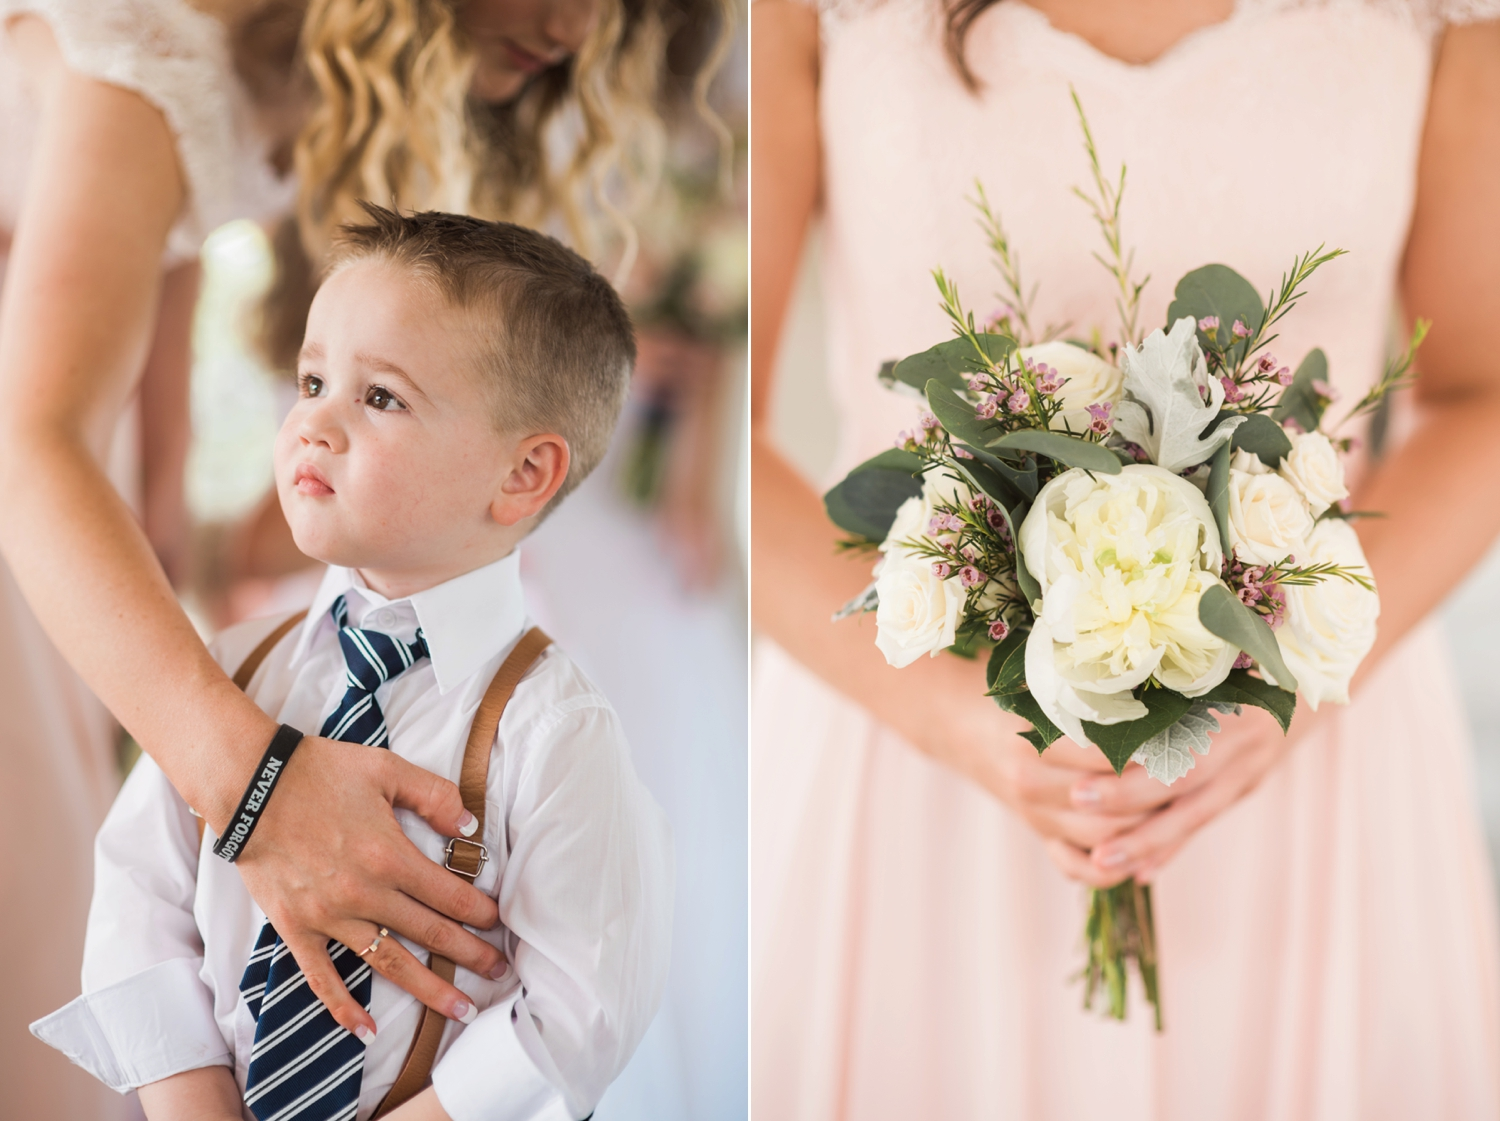 Community_Life_Center_Indianapolis_Indiana_Wedding_Photographer_Chloe_Luka_Photography_6916.jpg